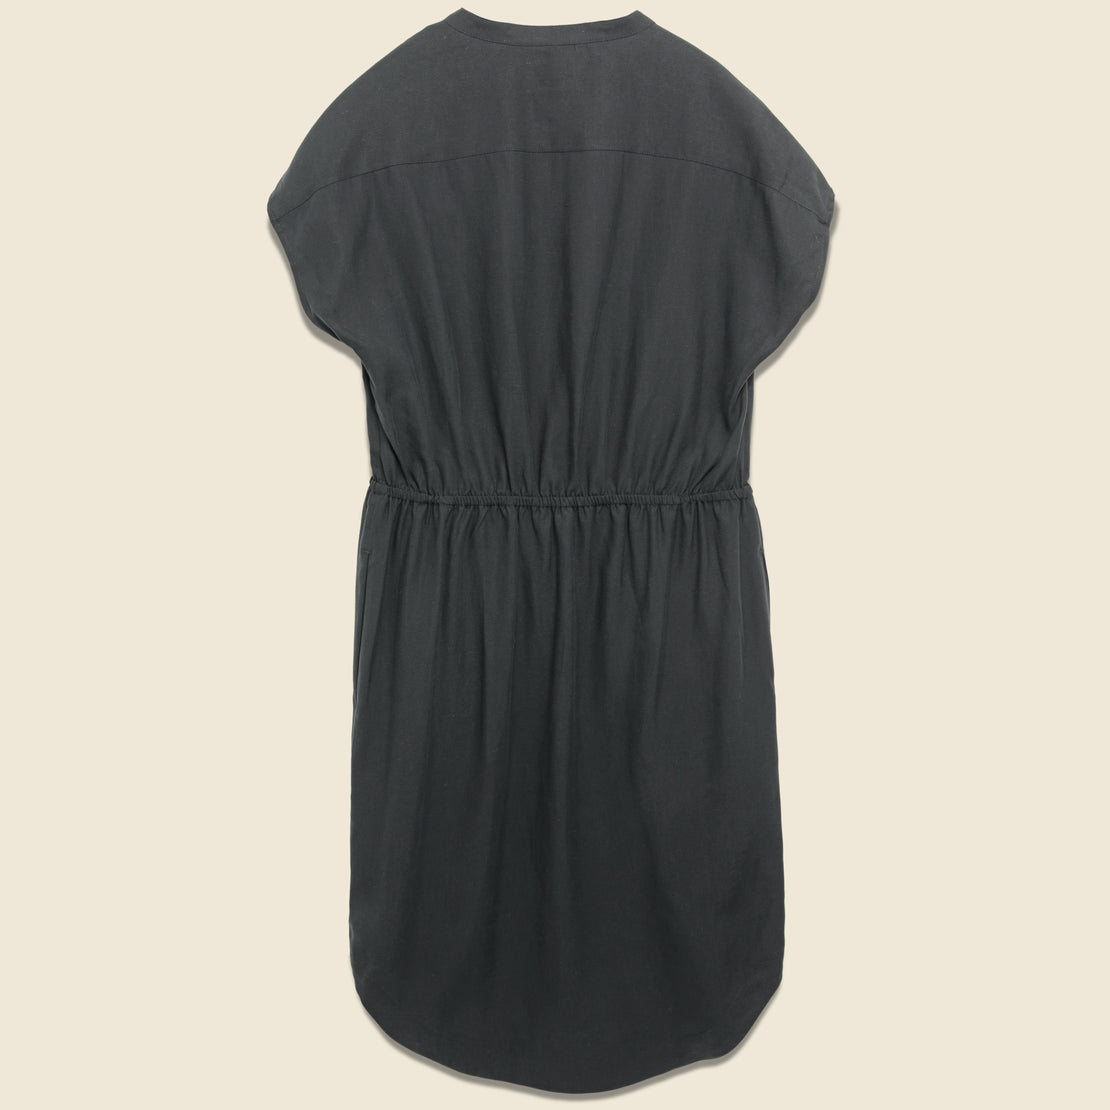 Clement Dress - Black